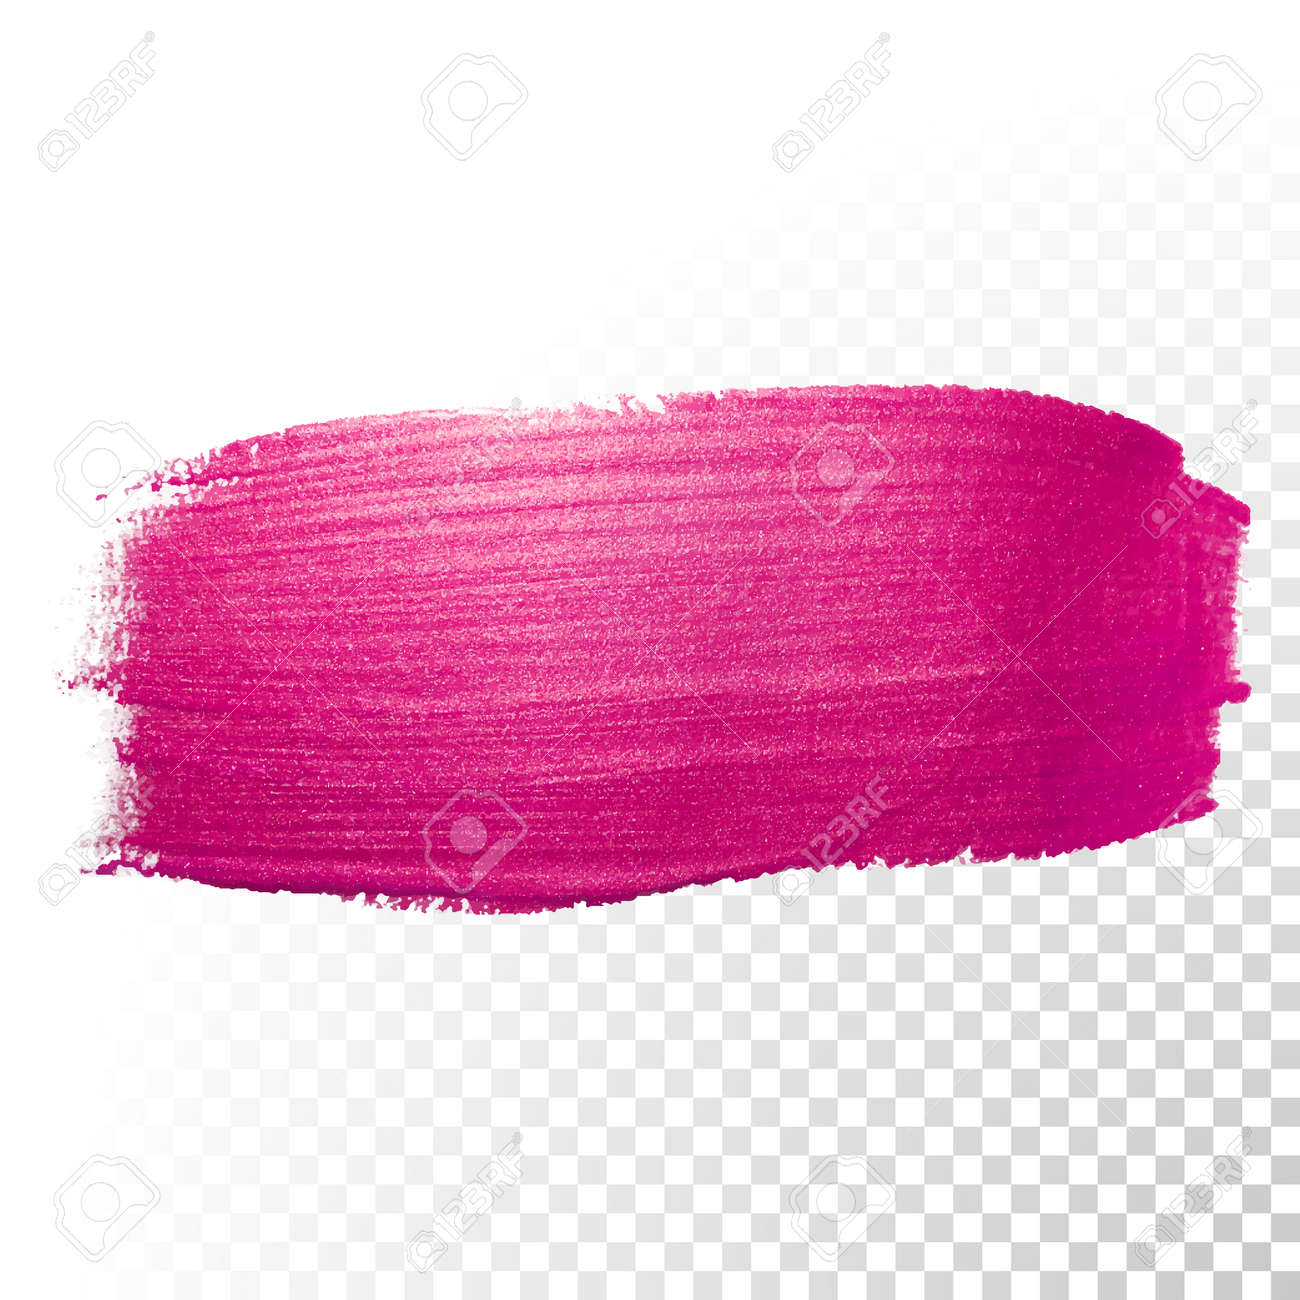 Vector pink watercolor brush stroke. Polish splash line trace. Abstract shape red oil paint smear on transparent background. - 52868116